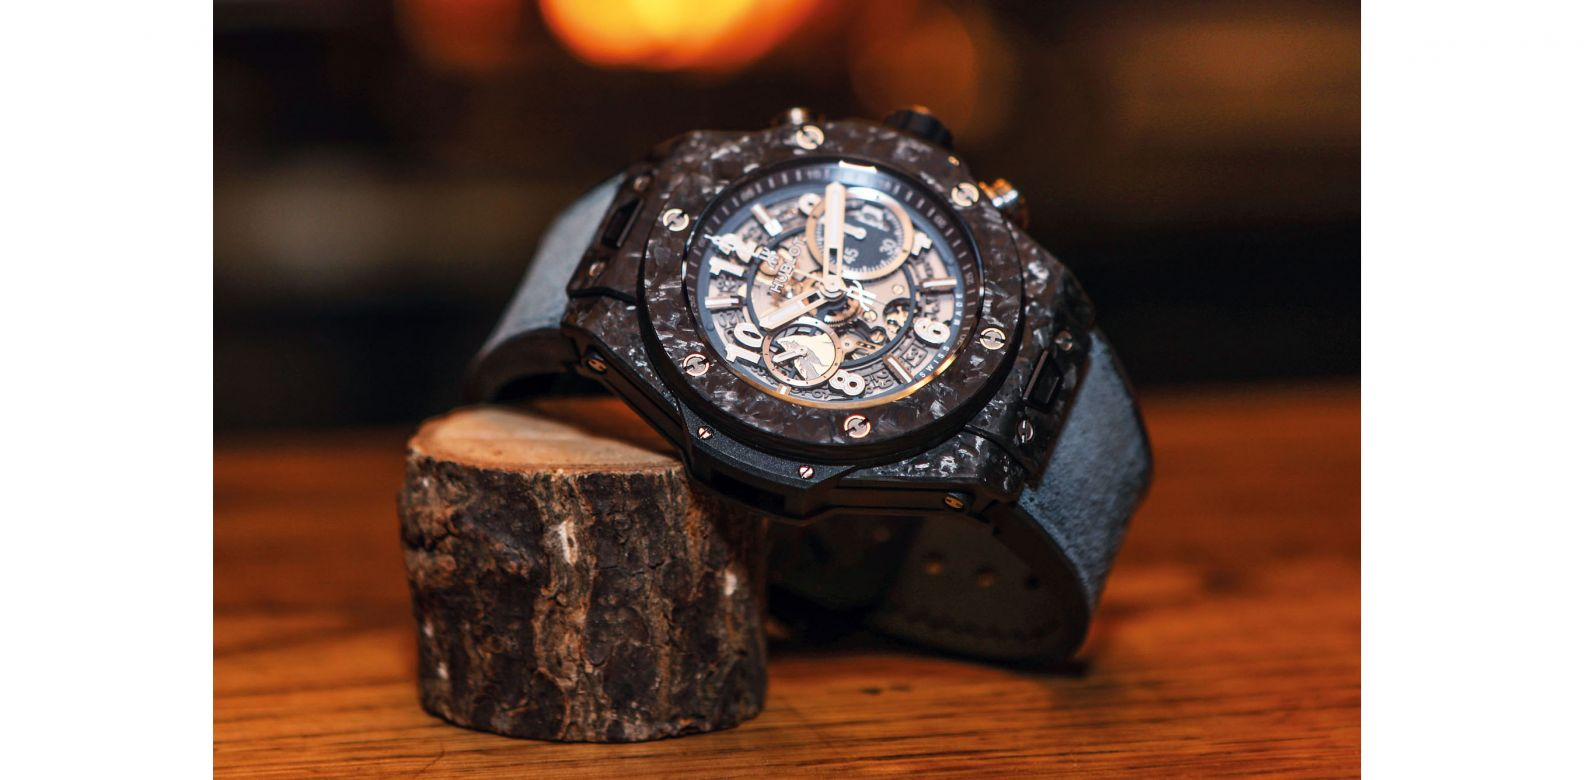 """For the Big Bang Unico Frosted Carbon, the top layer of its carbon-fibre components is prefabricated by randomly setting carbon flakes on it to give it the """"frosted"""" effect"""